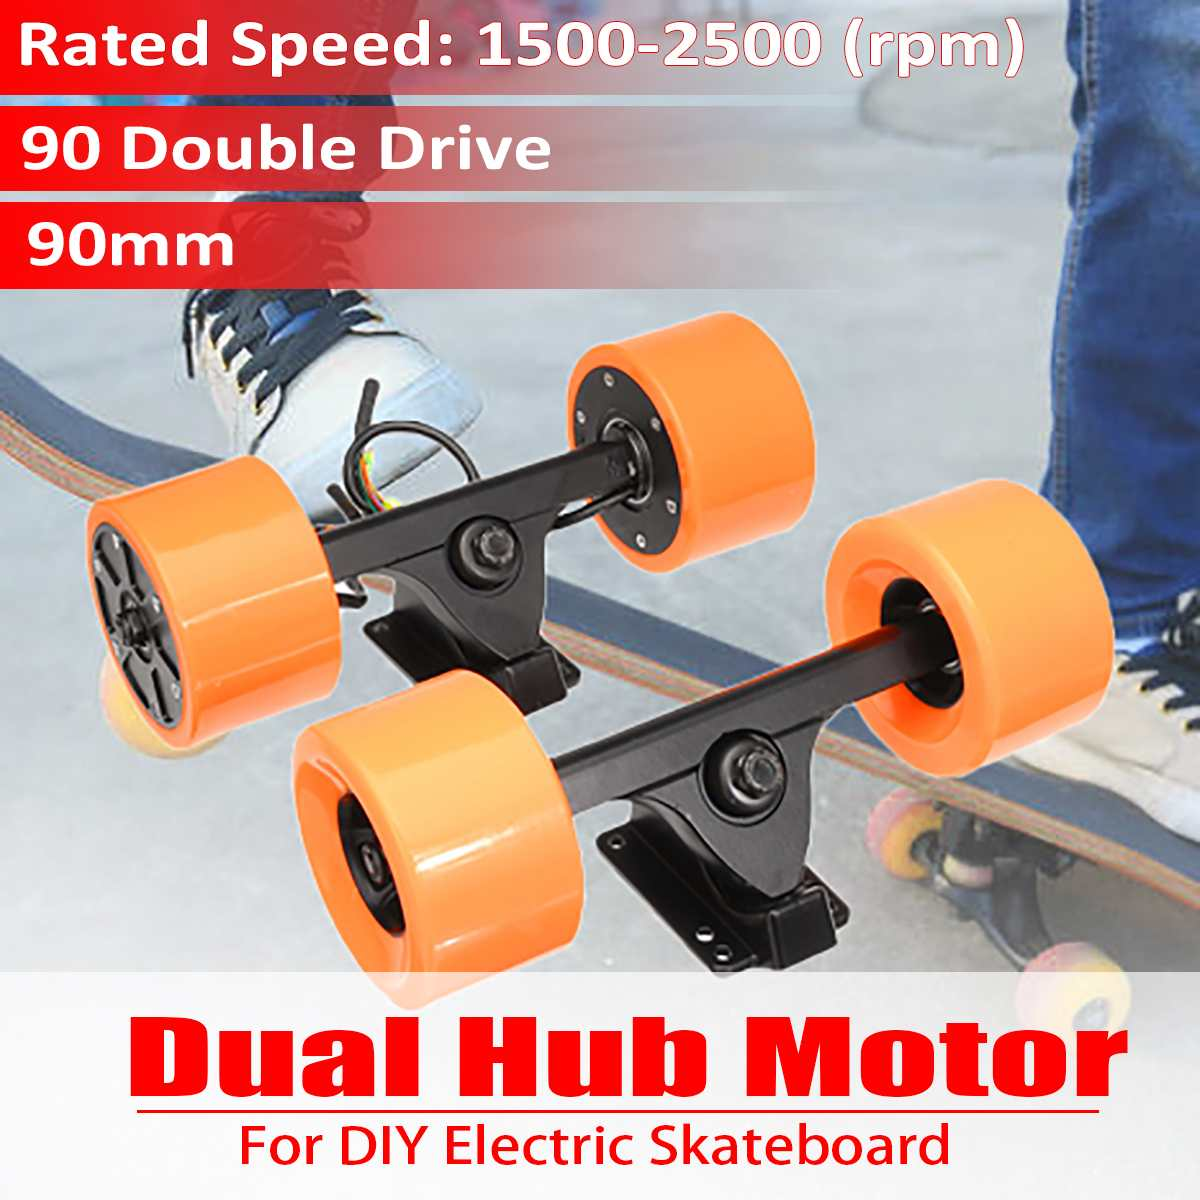 Professional 90mm 600W Dual Drive Electric Skateboard Hub Motor Kit DC Brushless Remote Controll Scooter Drive Hub Motor